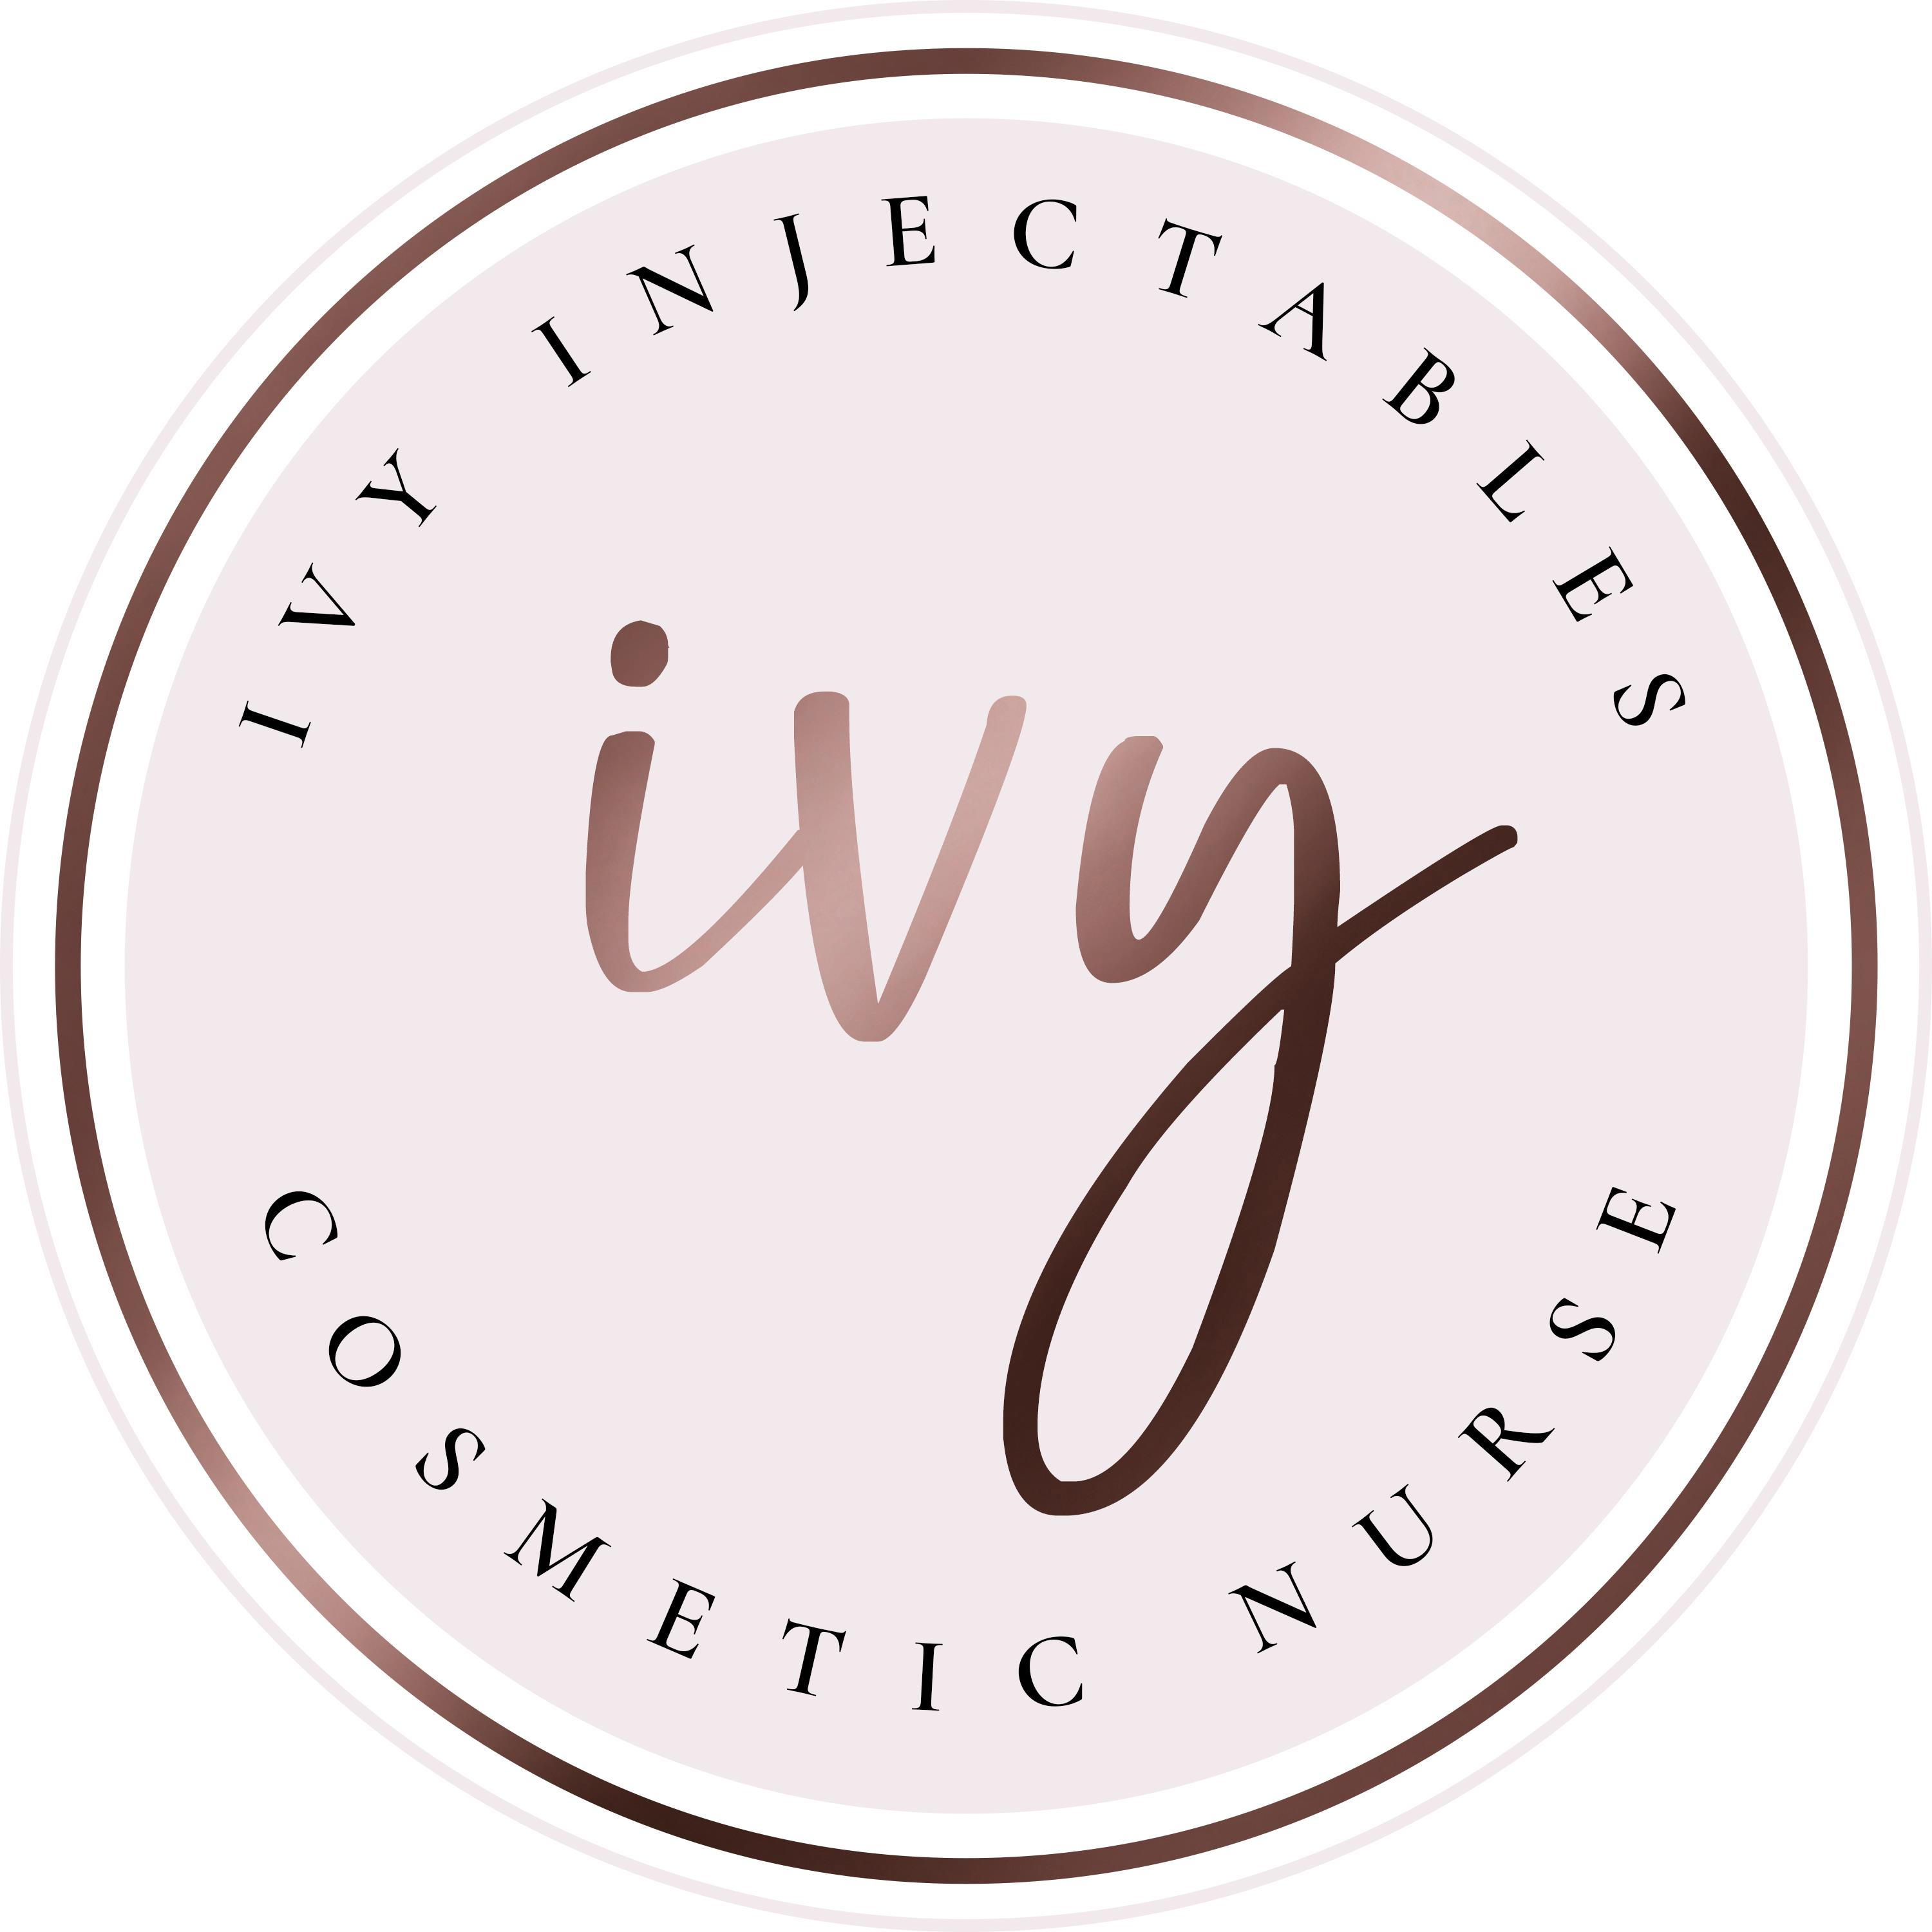 Ivy Injectables